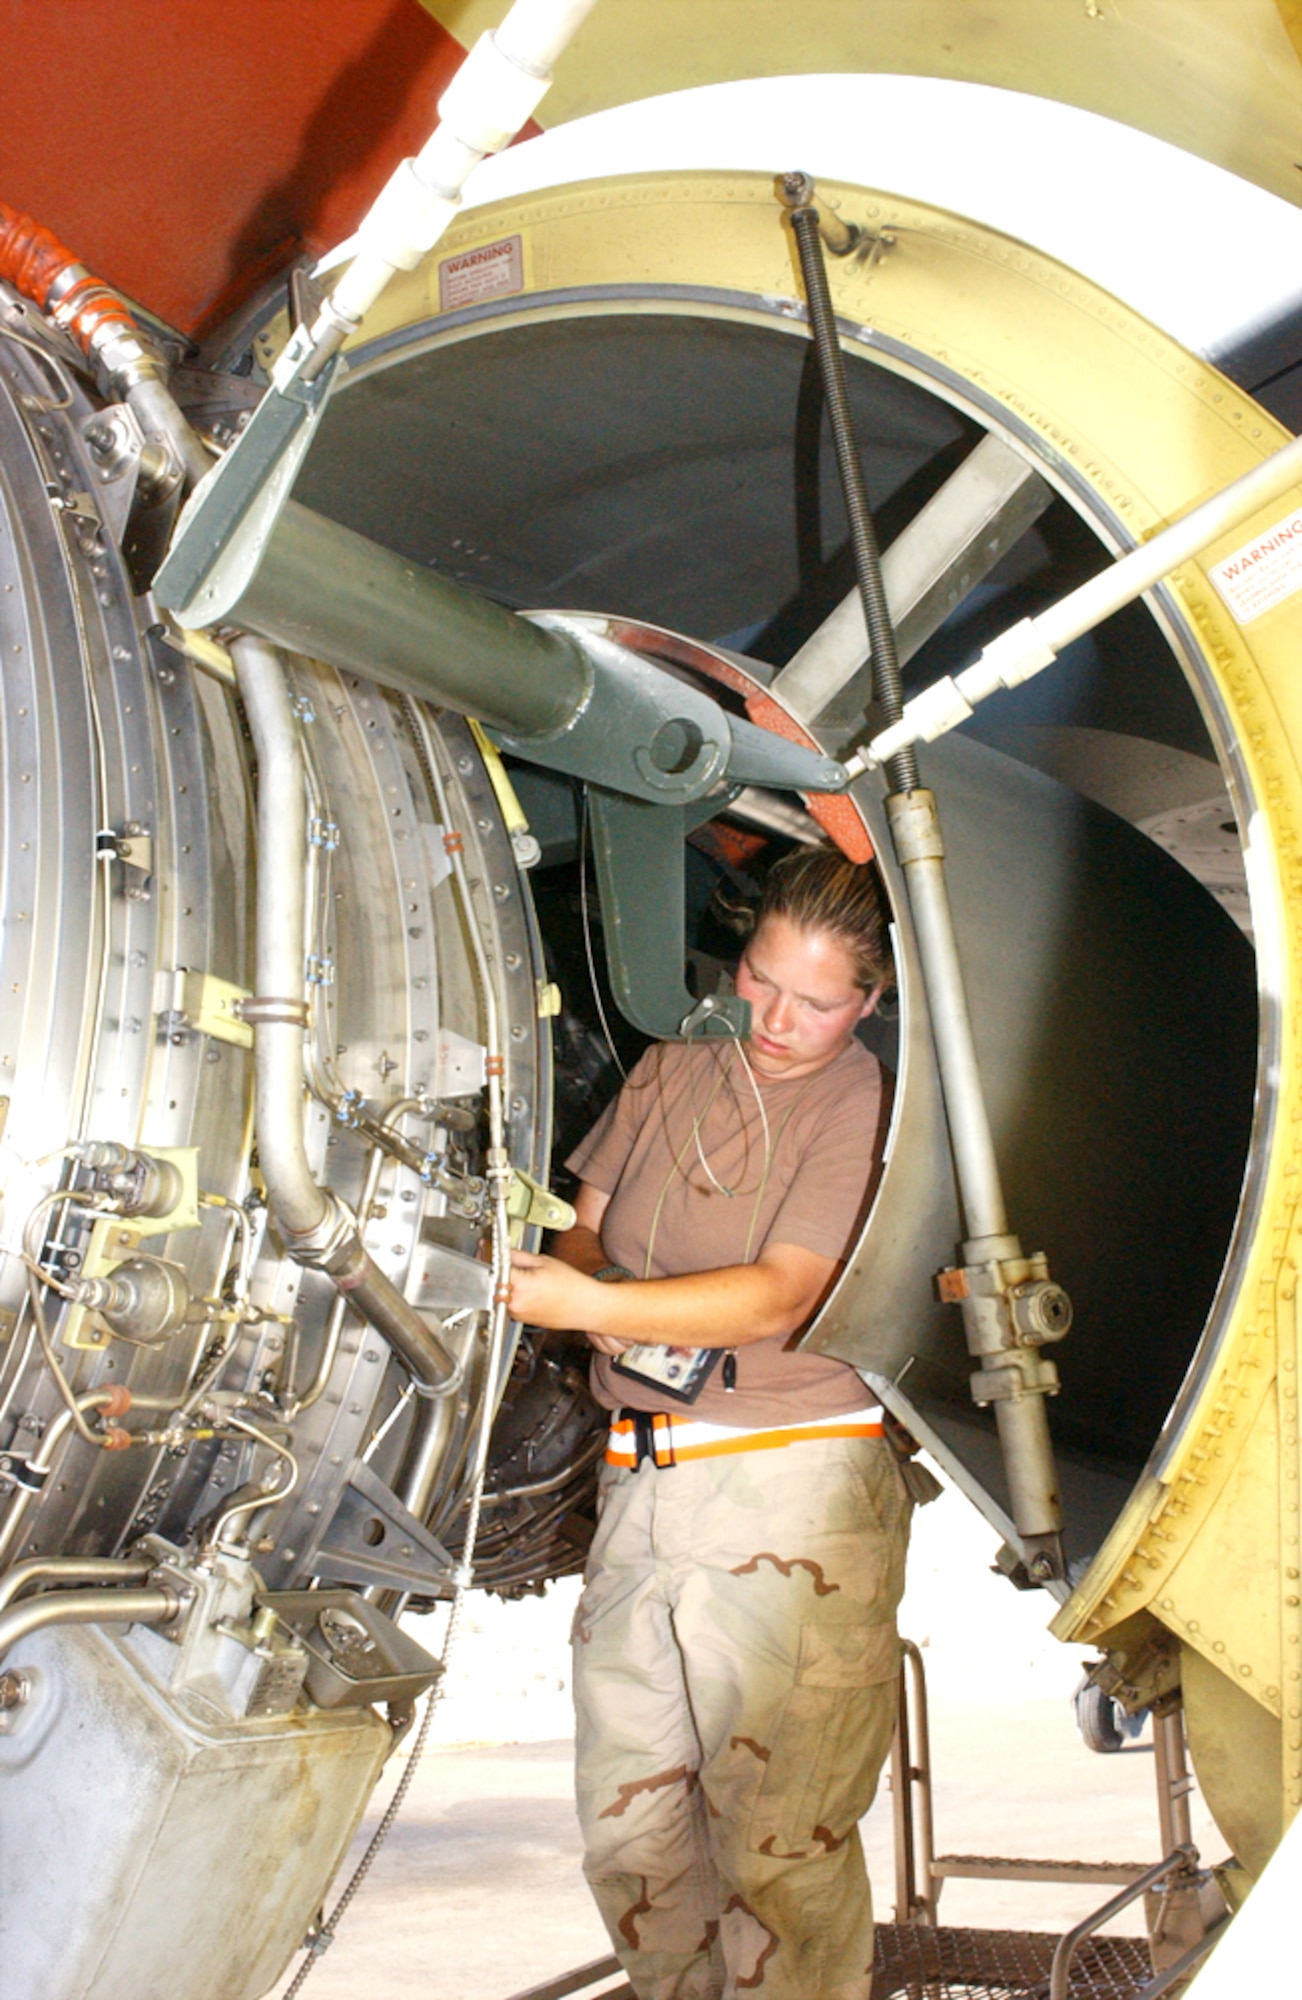 SOUTHWEST ASIA -- Senior Airman Abby Hernandez reconnects components of a KC-135 Stratotanker engine that was just installed.  KC-135 engines are very reliable and rarely have to be swapped.  Airmen at a forward-deployed location recently had to replace an engine on two KC-135s in the span of about a week.  Airman Hernandez is deployed with the 380th Expeditionary Aircraft Maintenance Squadron.  (U.S. Air Force photo by Airman 1st Class Bruce Hedrick)